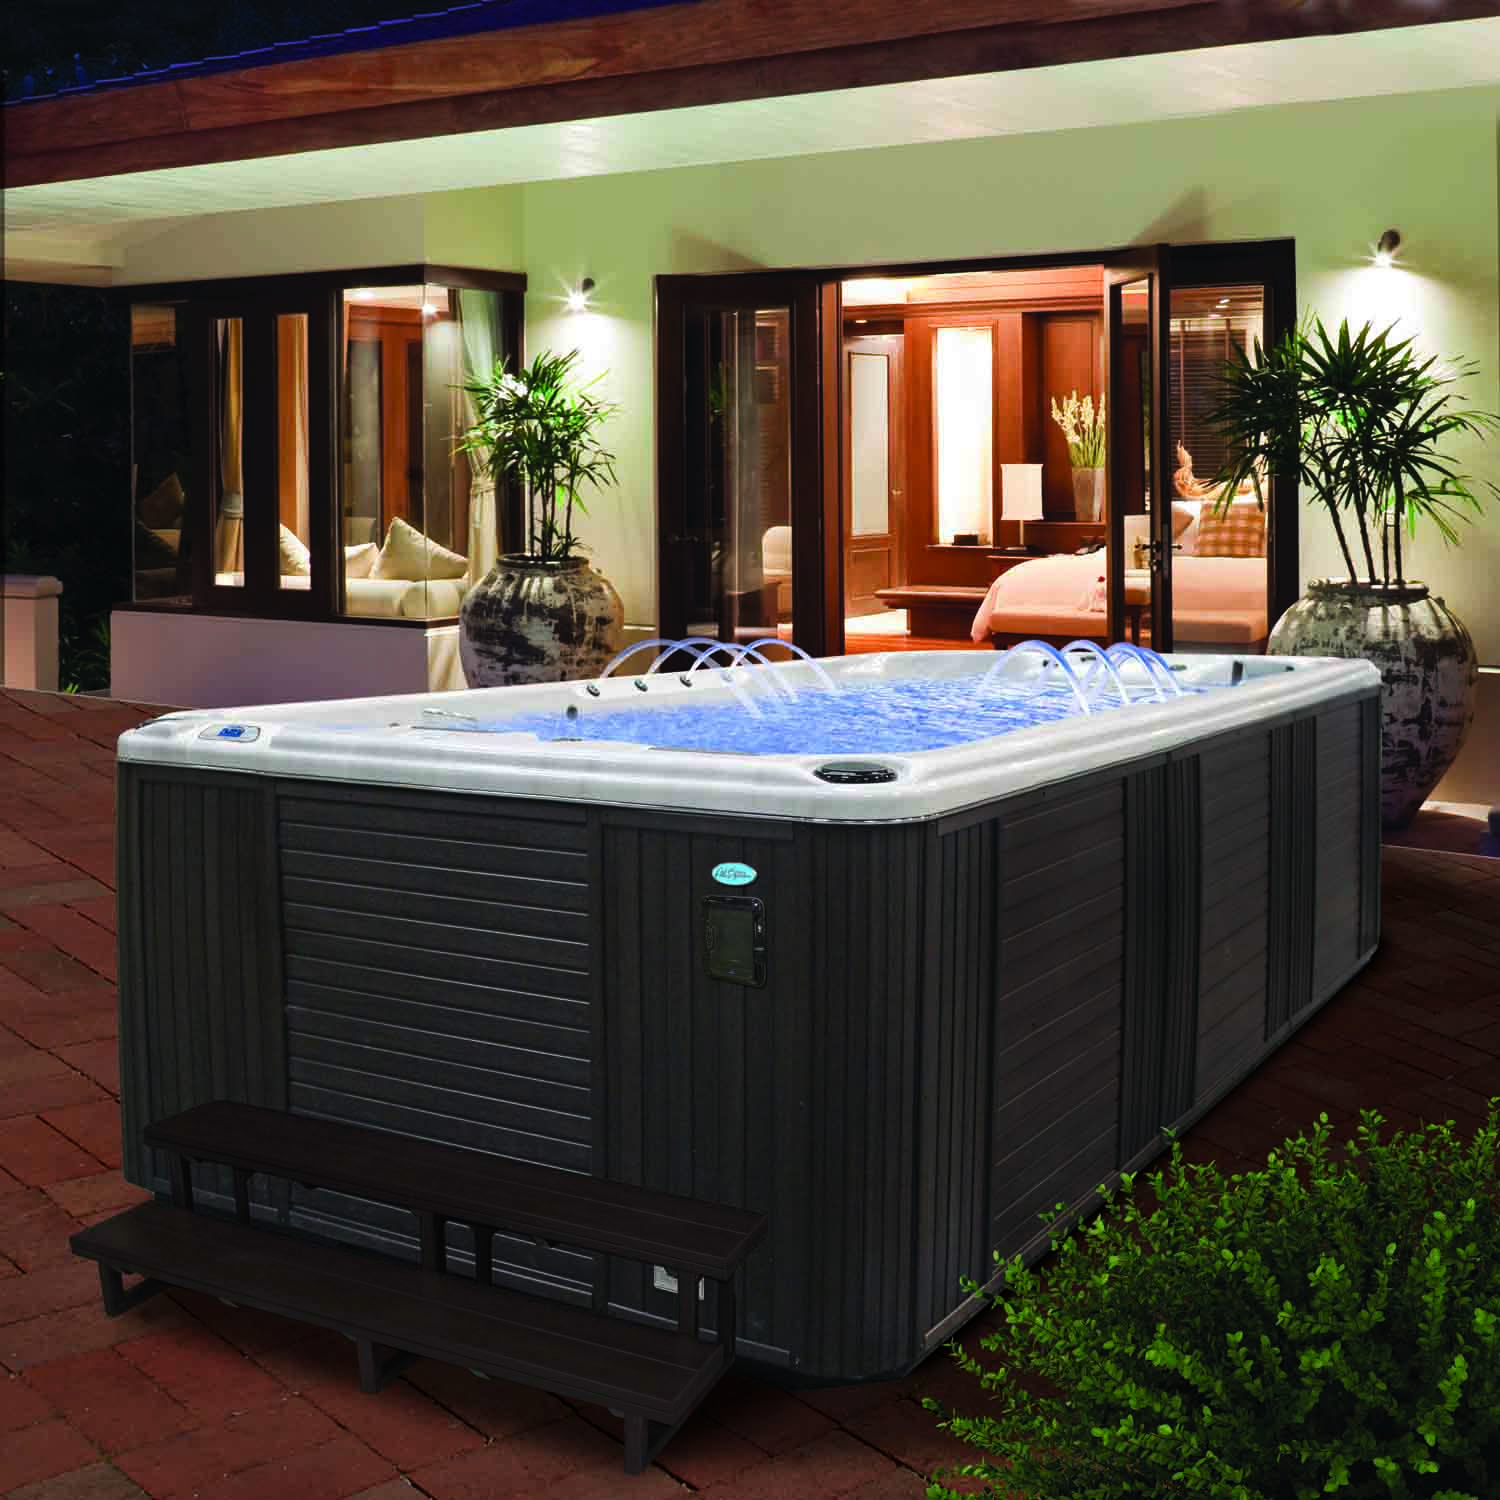 Cal spas blog tag swim spas cal spas - American swimming pool and spa association ...